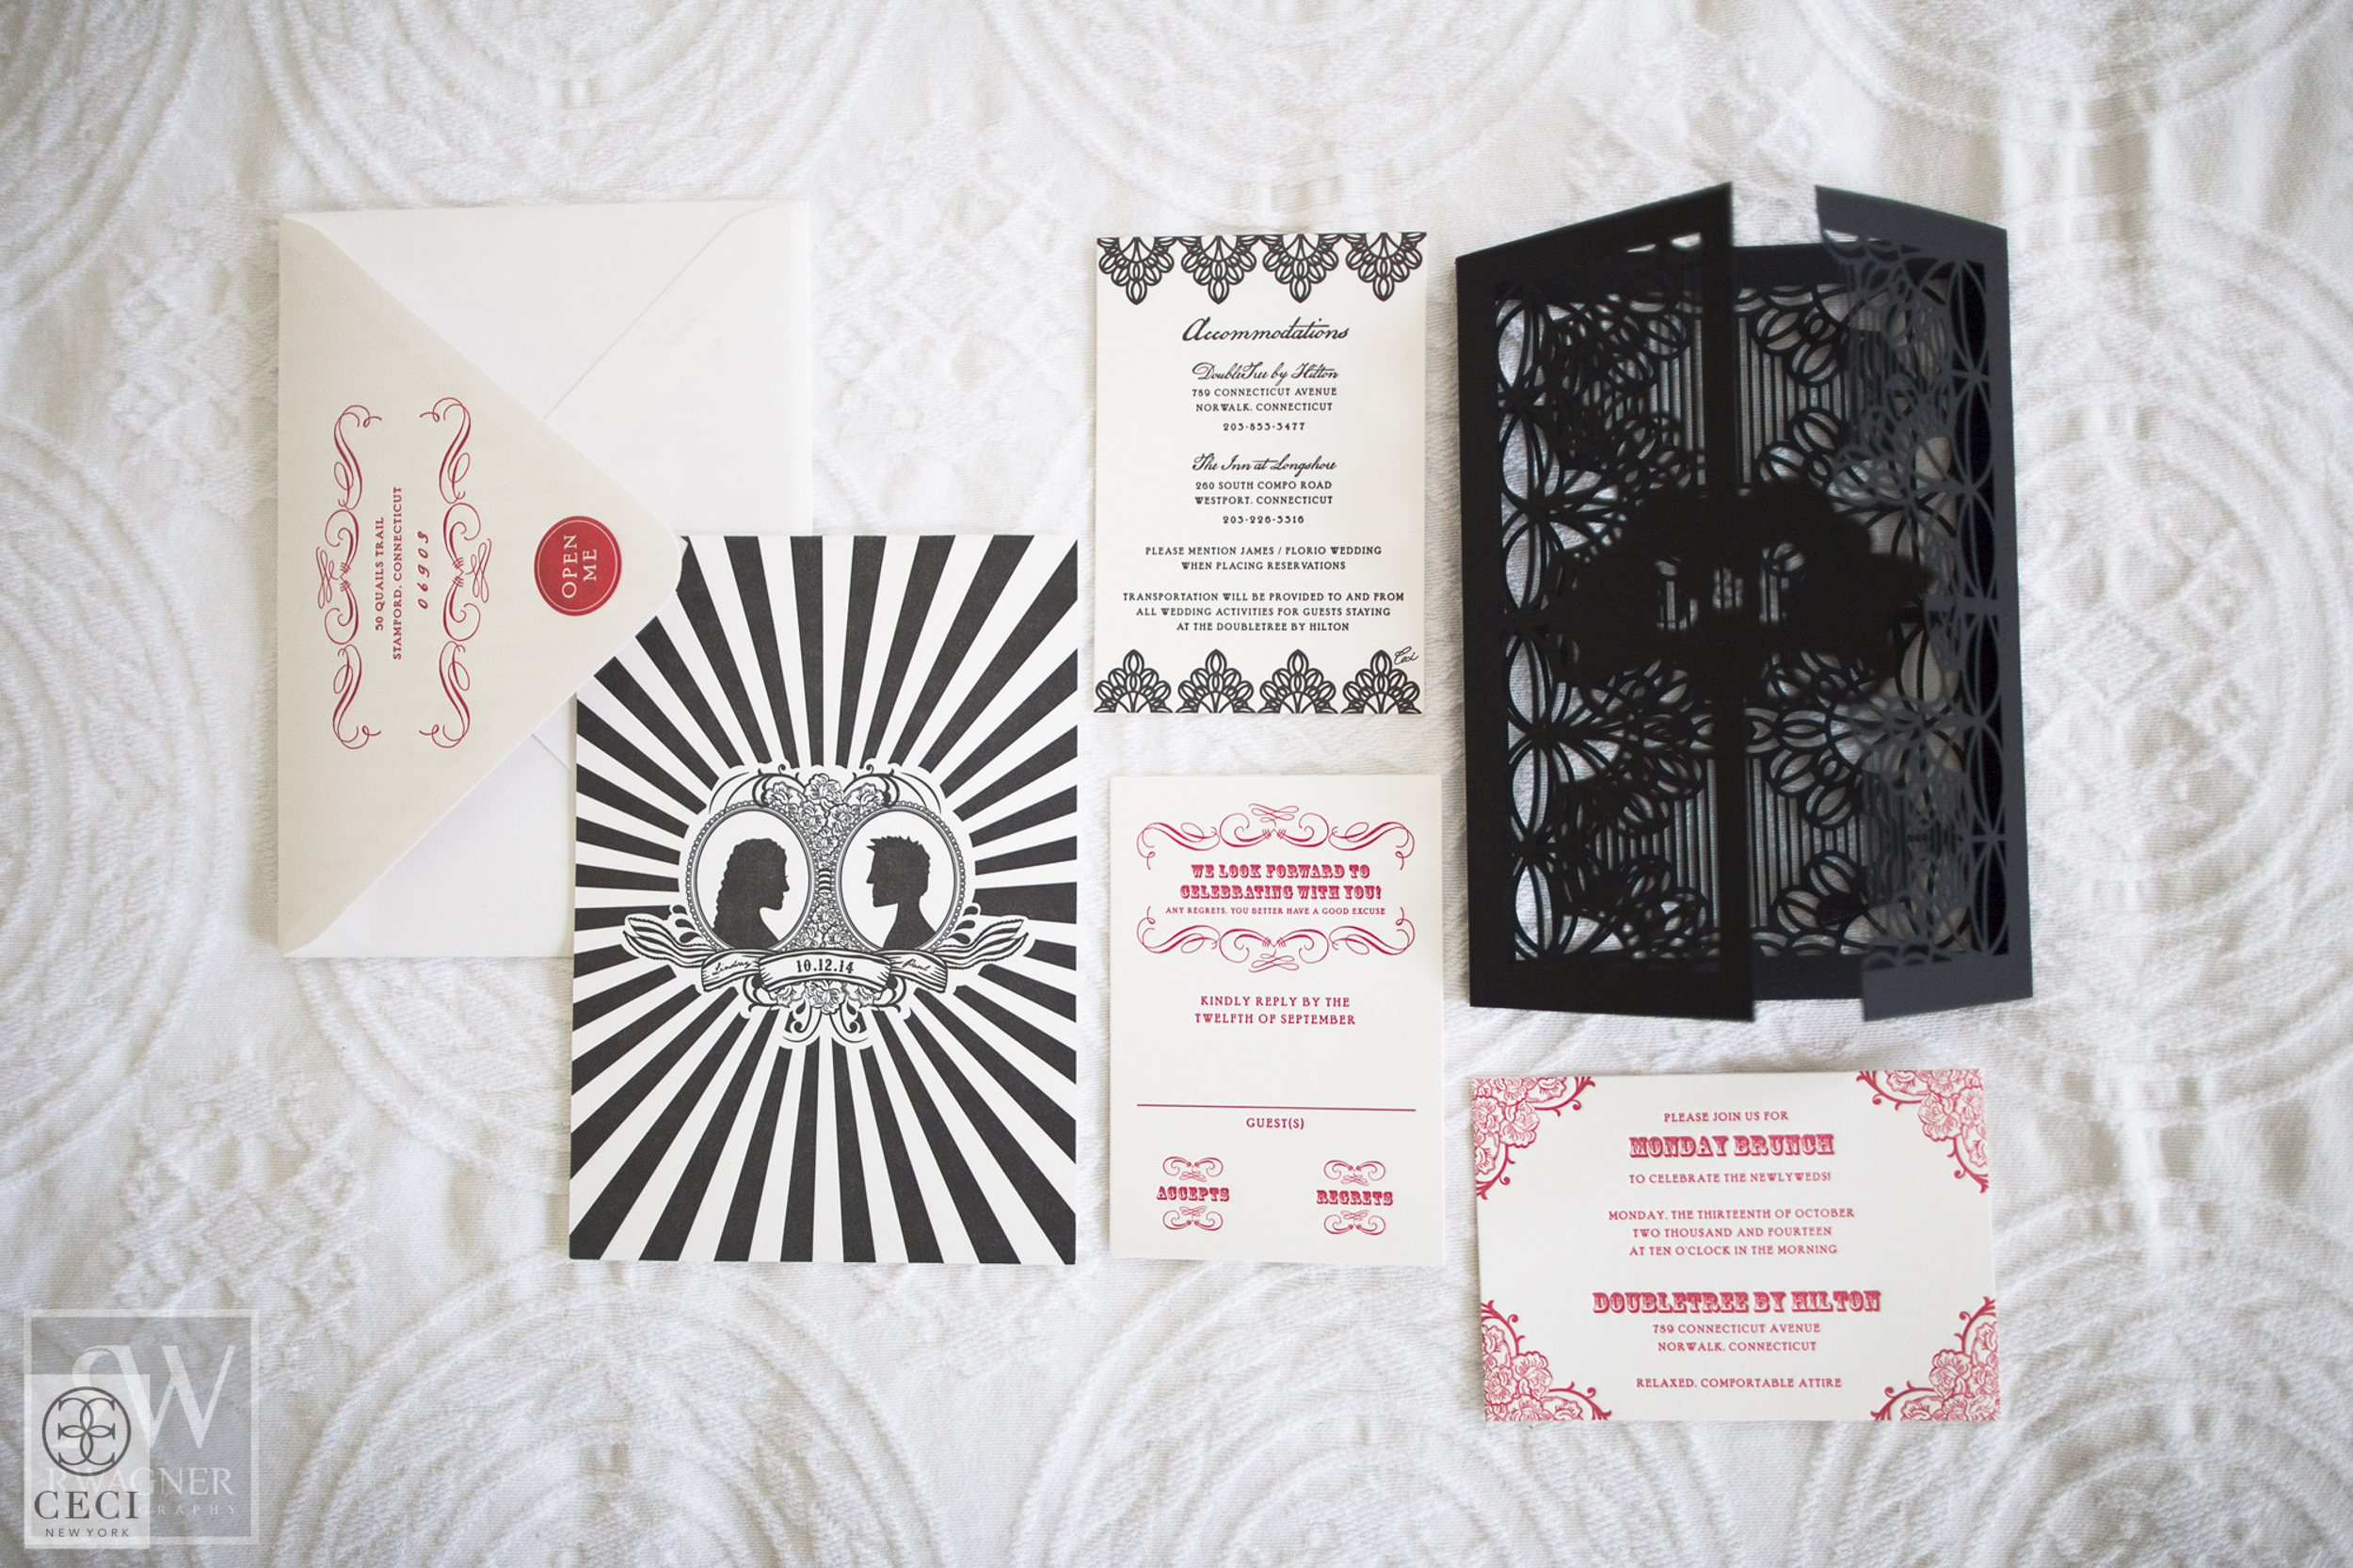 ceci_new_york_wedding_invitation_design_black_red_dramatic_macabre_statement-9.jpg